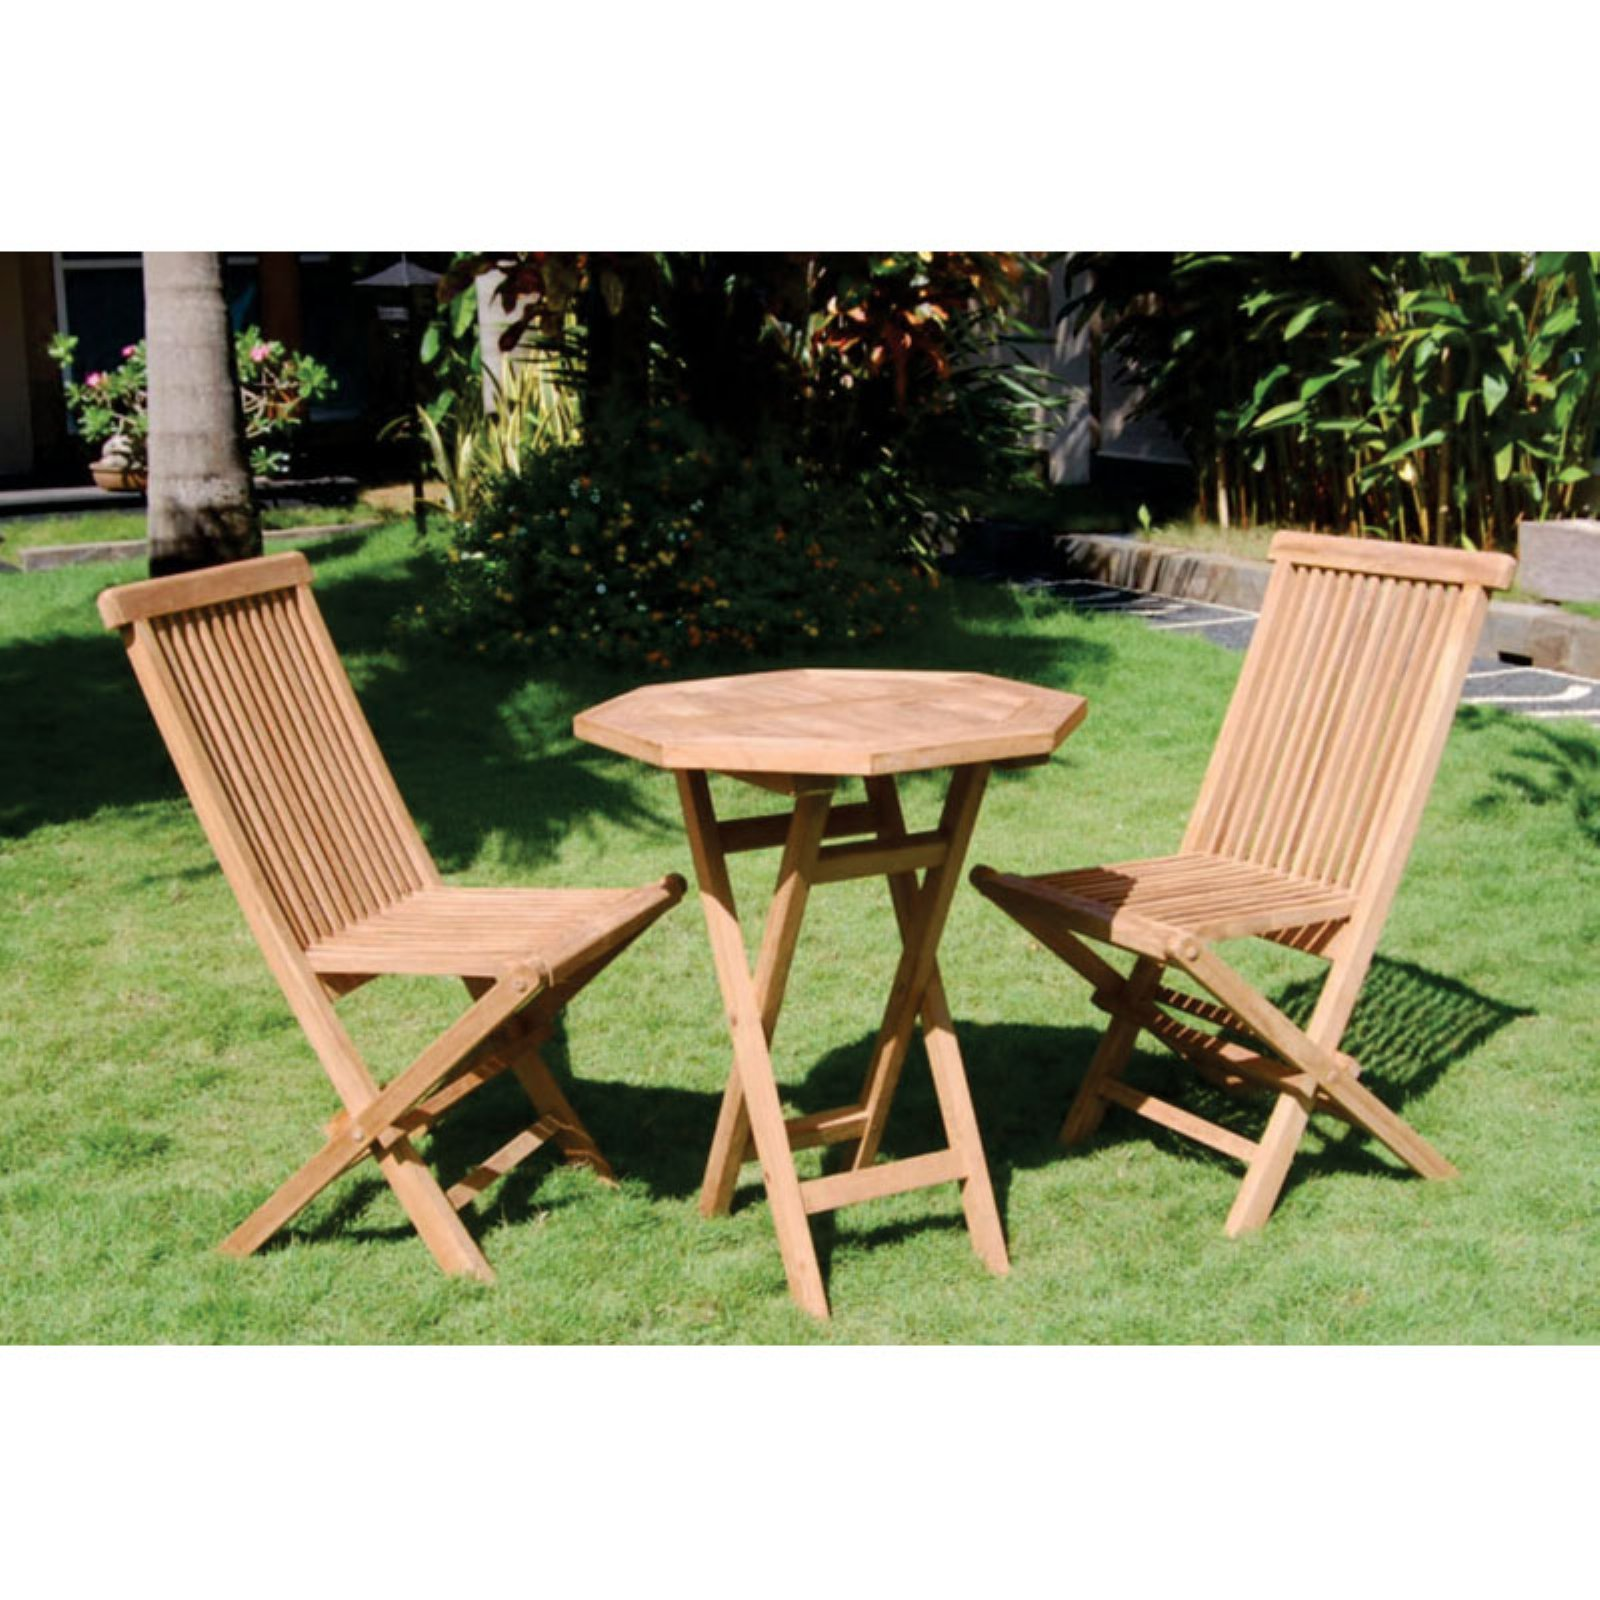 Bamboo54 Teak 3 Piece Folding Outdoor Bistro Set by Bamboo 54